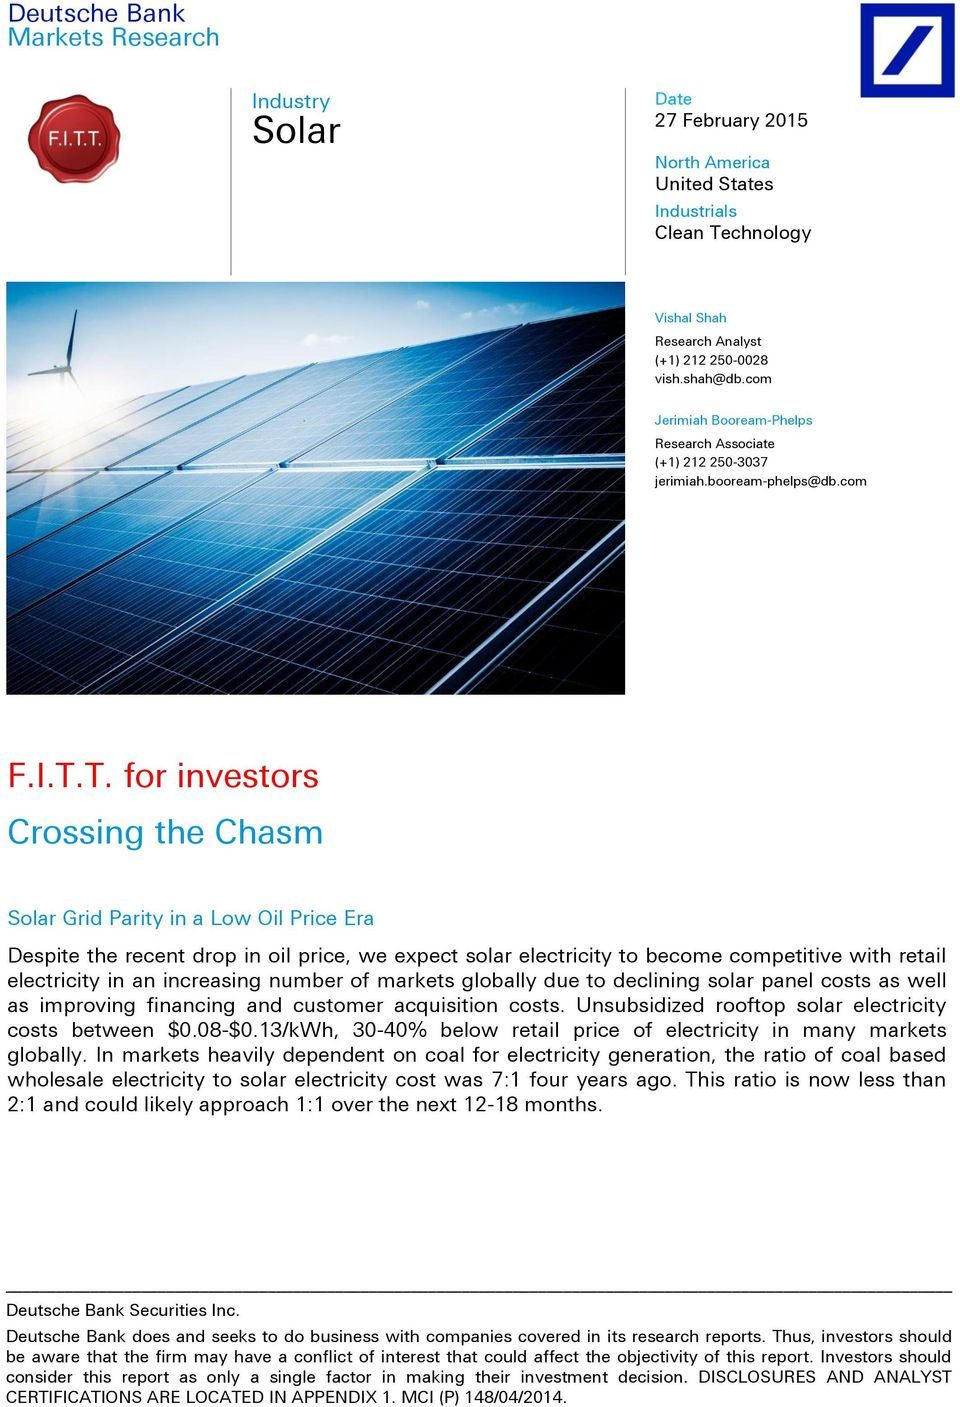 T. for investors Crossing the Chasm Grid Parity in a Low Oil Price Era Despite the recent drop in oil price, we expect solar electricity to become competitive with retail electricity in an increasing